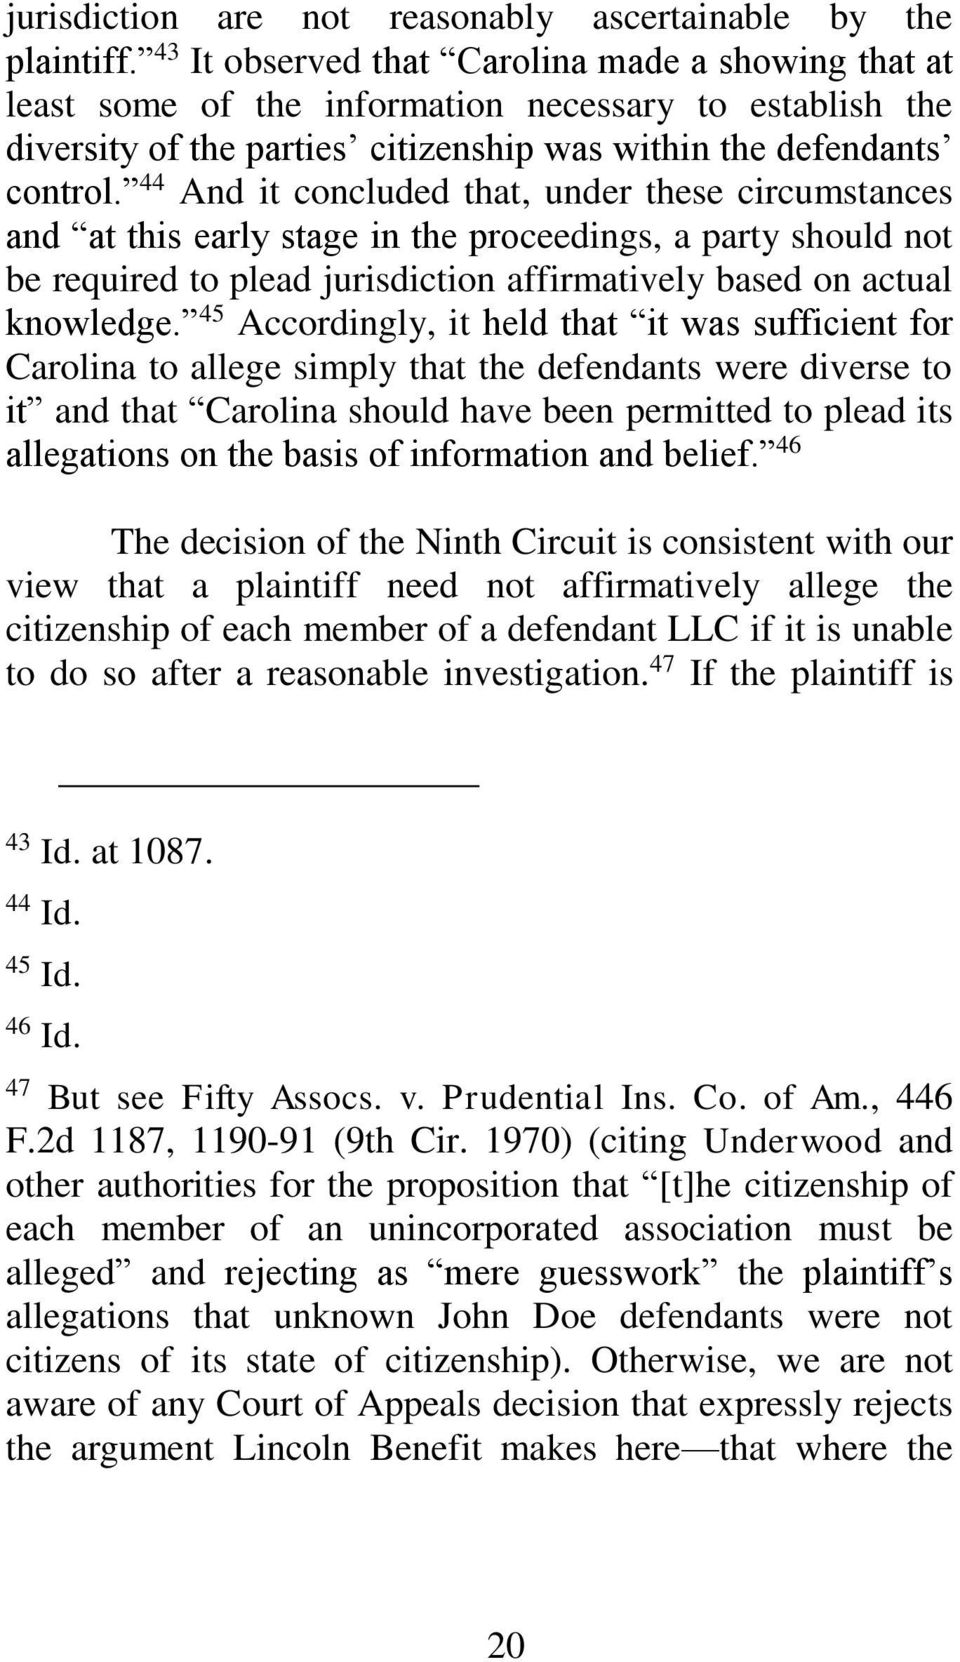 44 And it concluded that, under these circumstances and at this early stage in the proceedings, a party should not be required to plead jurisdiction affirmatively based on actual knowledge.